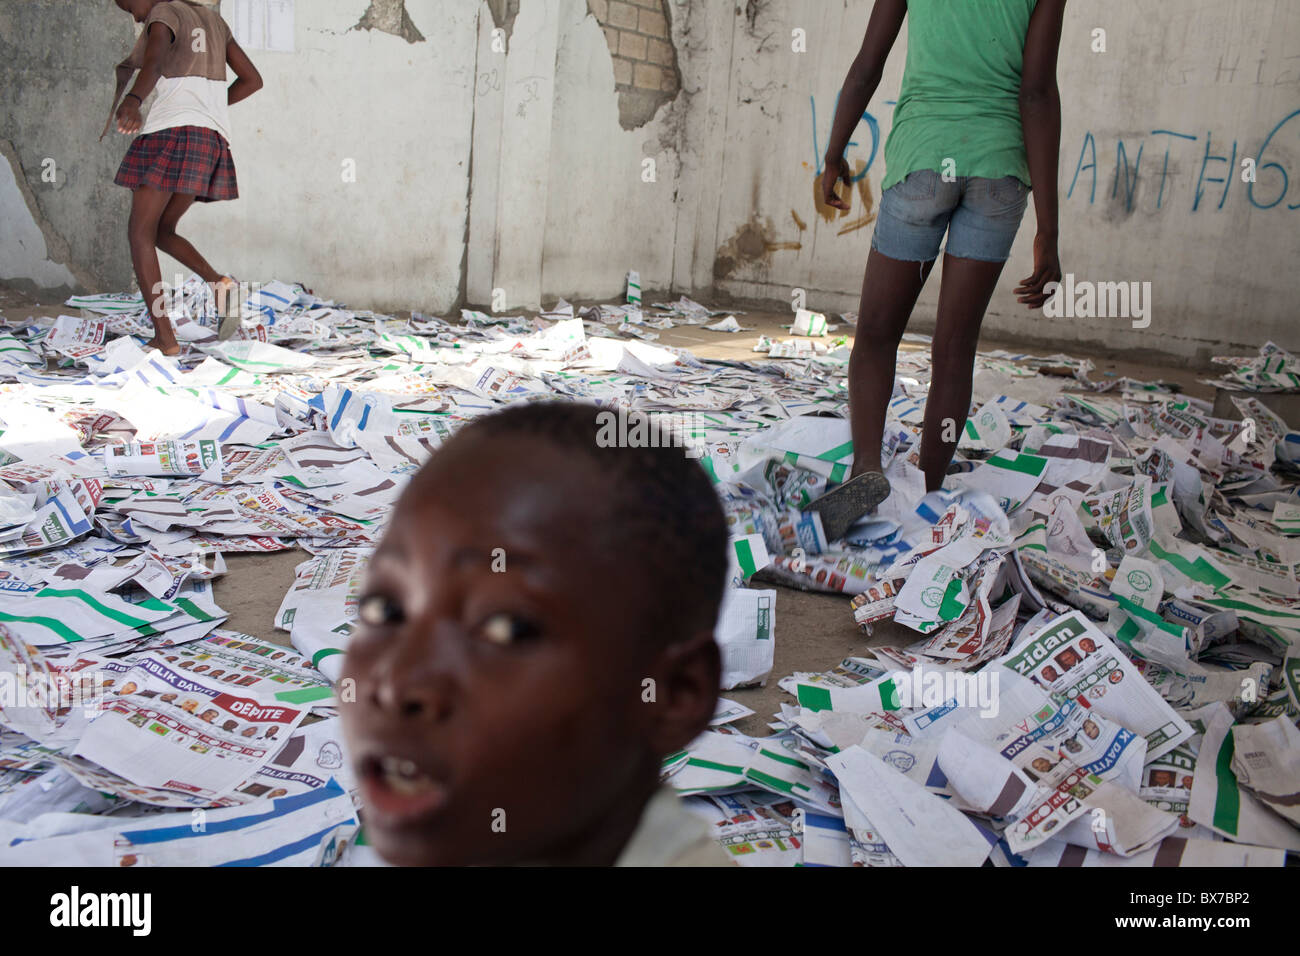 Children play in ballots at a polling station that had been ransacked on the previous day during presidential elections - Stock Image